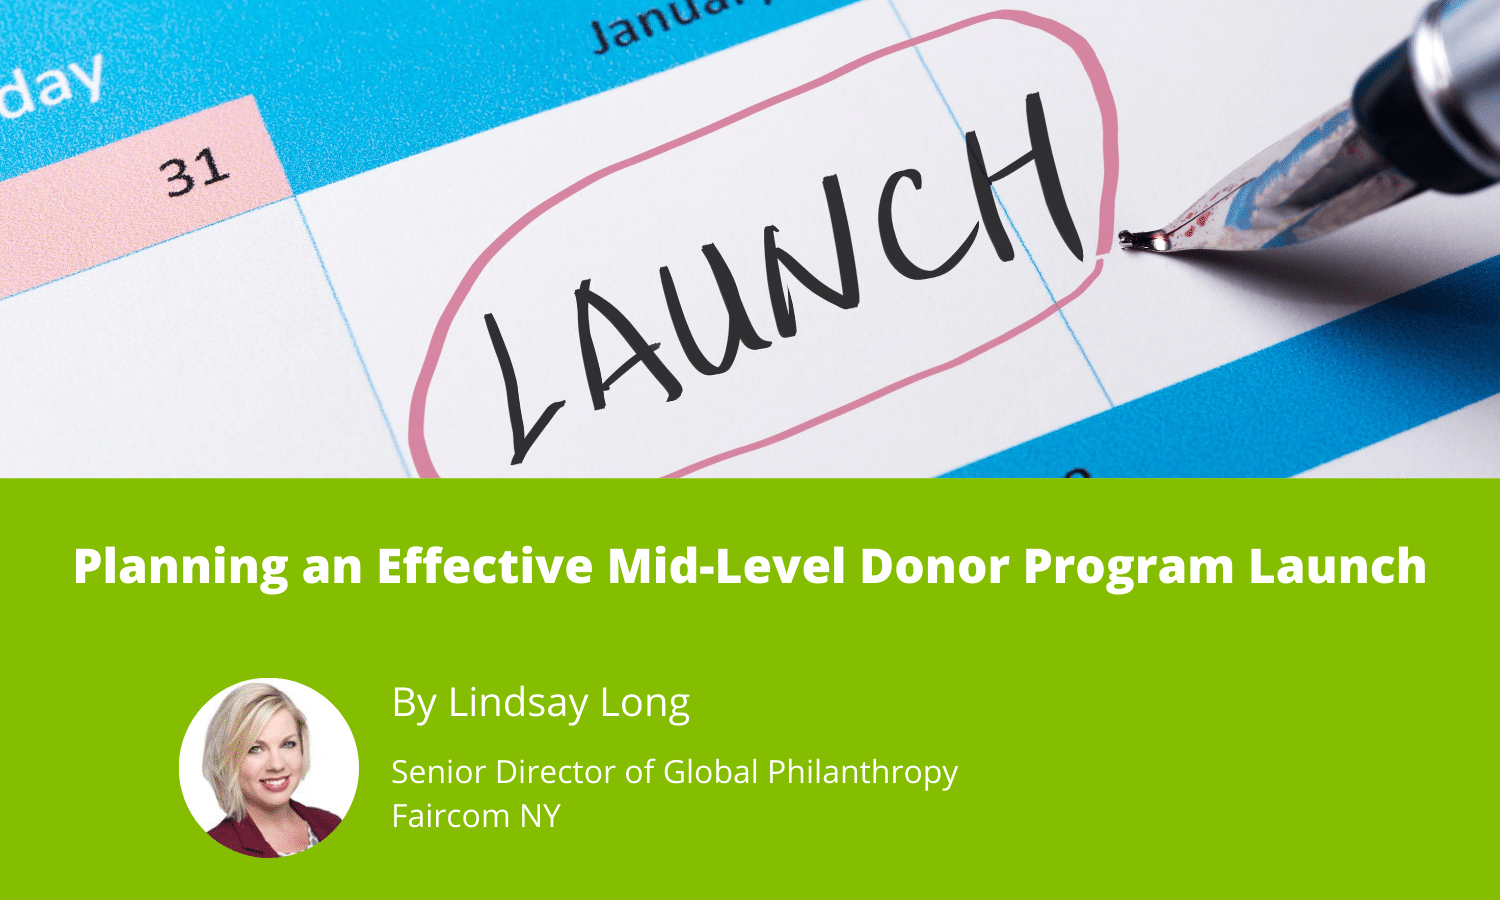 Planning an Effective Mid-Level Donor Program Launch